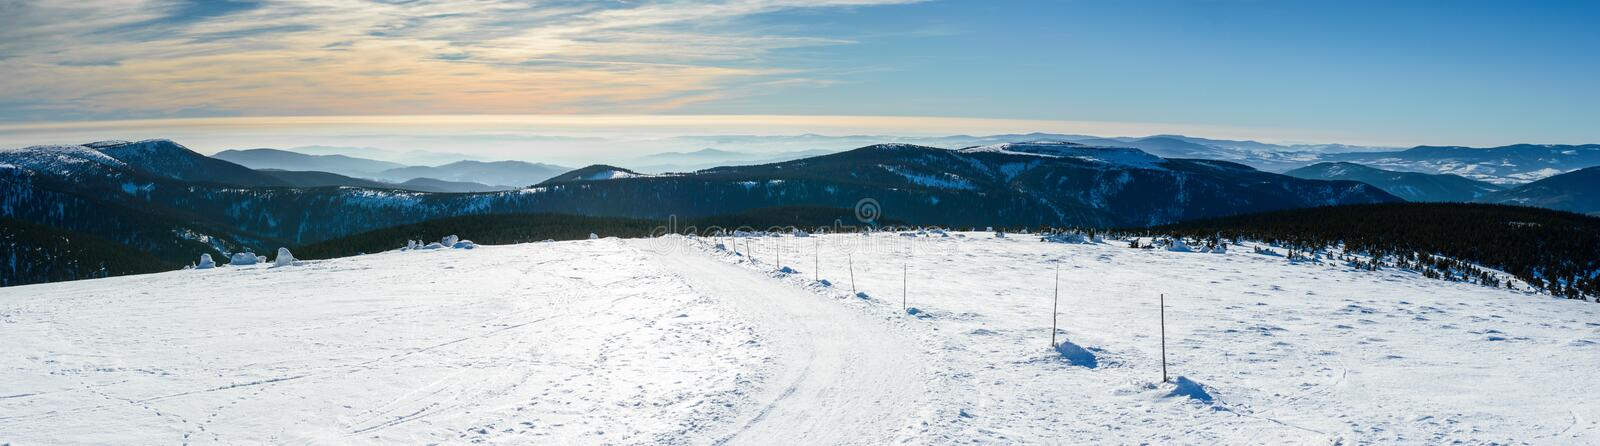 Eastern Sudetes, winter landscape with a panorama of the mountain peaks royalty free stock images